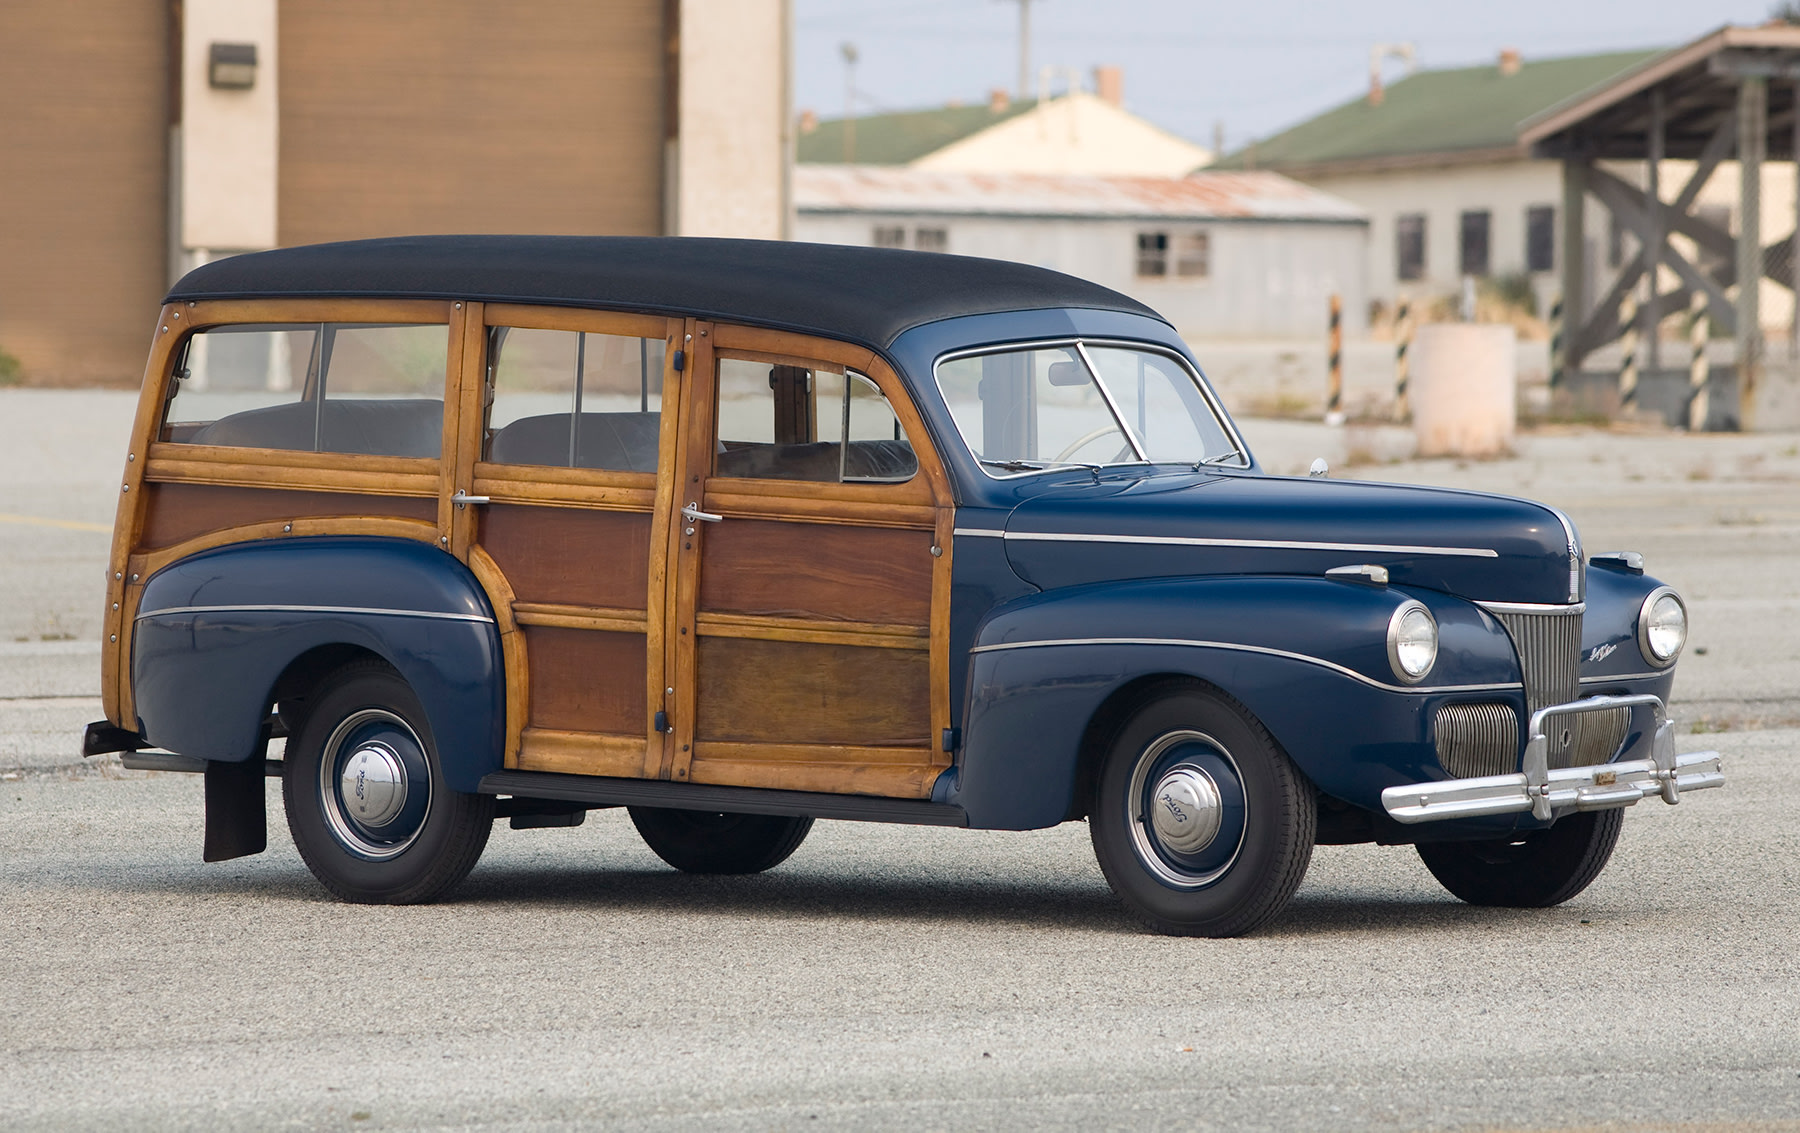 1941 Ford DeLuxe Woodie Wagon